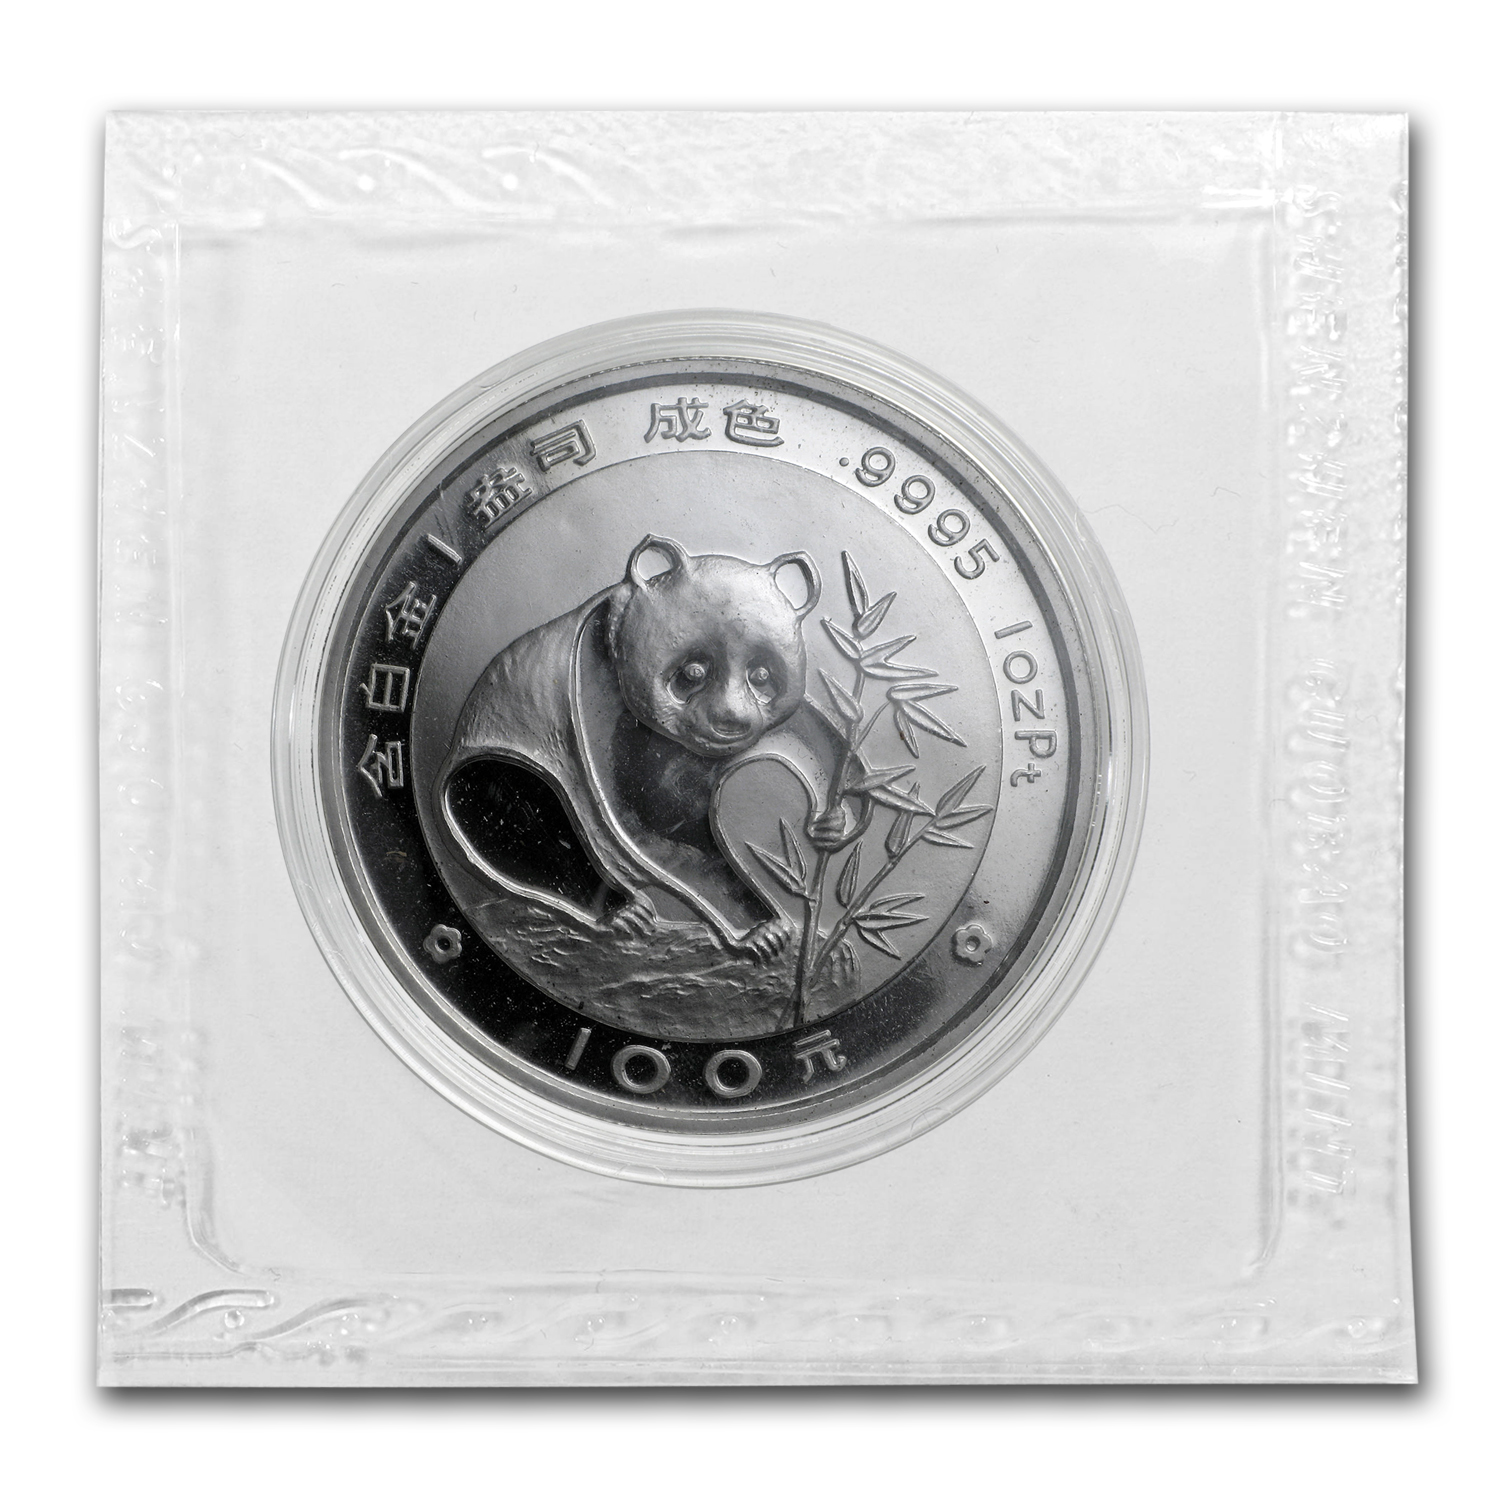 1988 1 oz Proof Platinum Chinese Panda (w/Box & CoA)